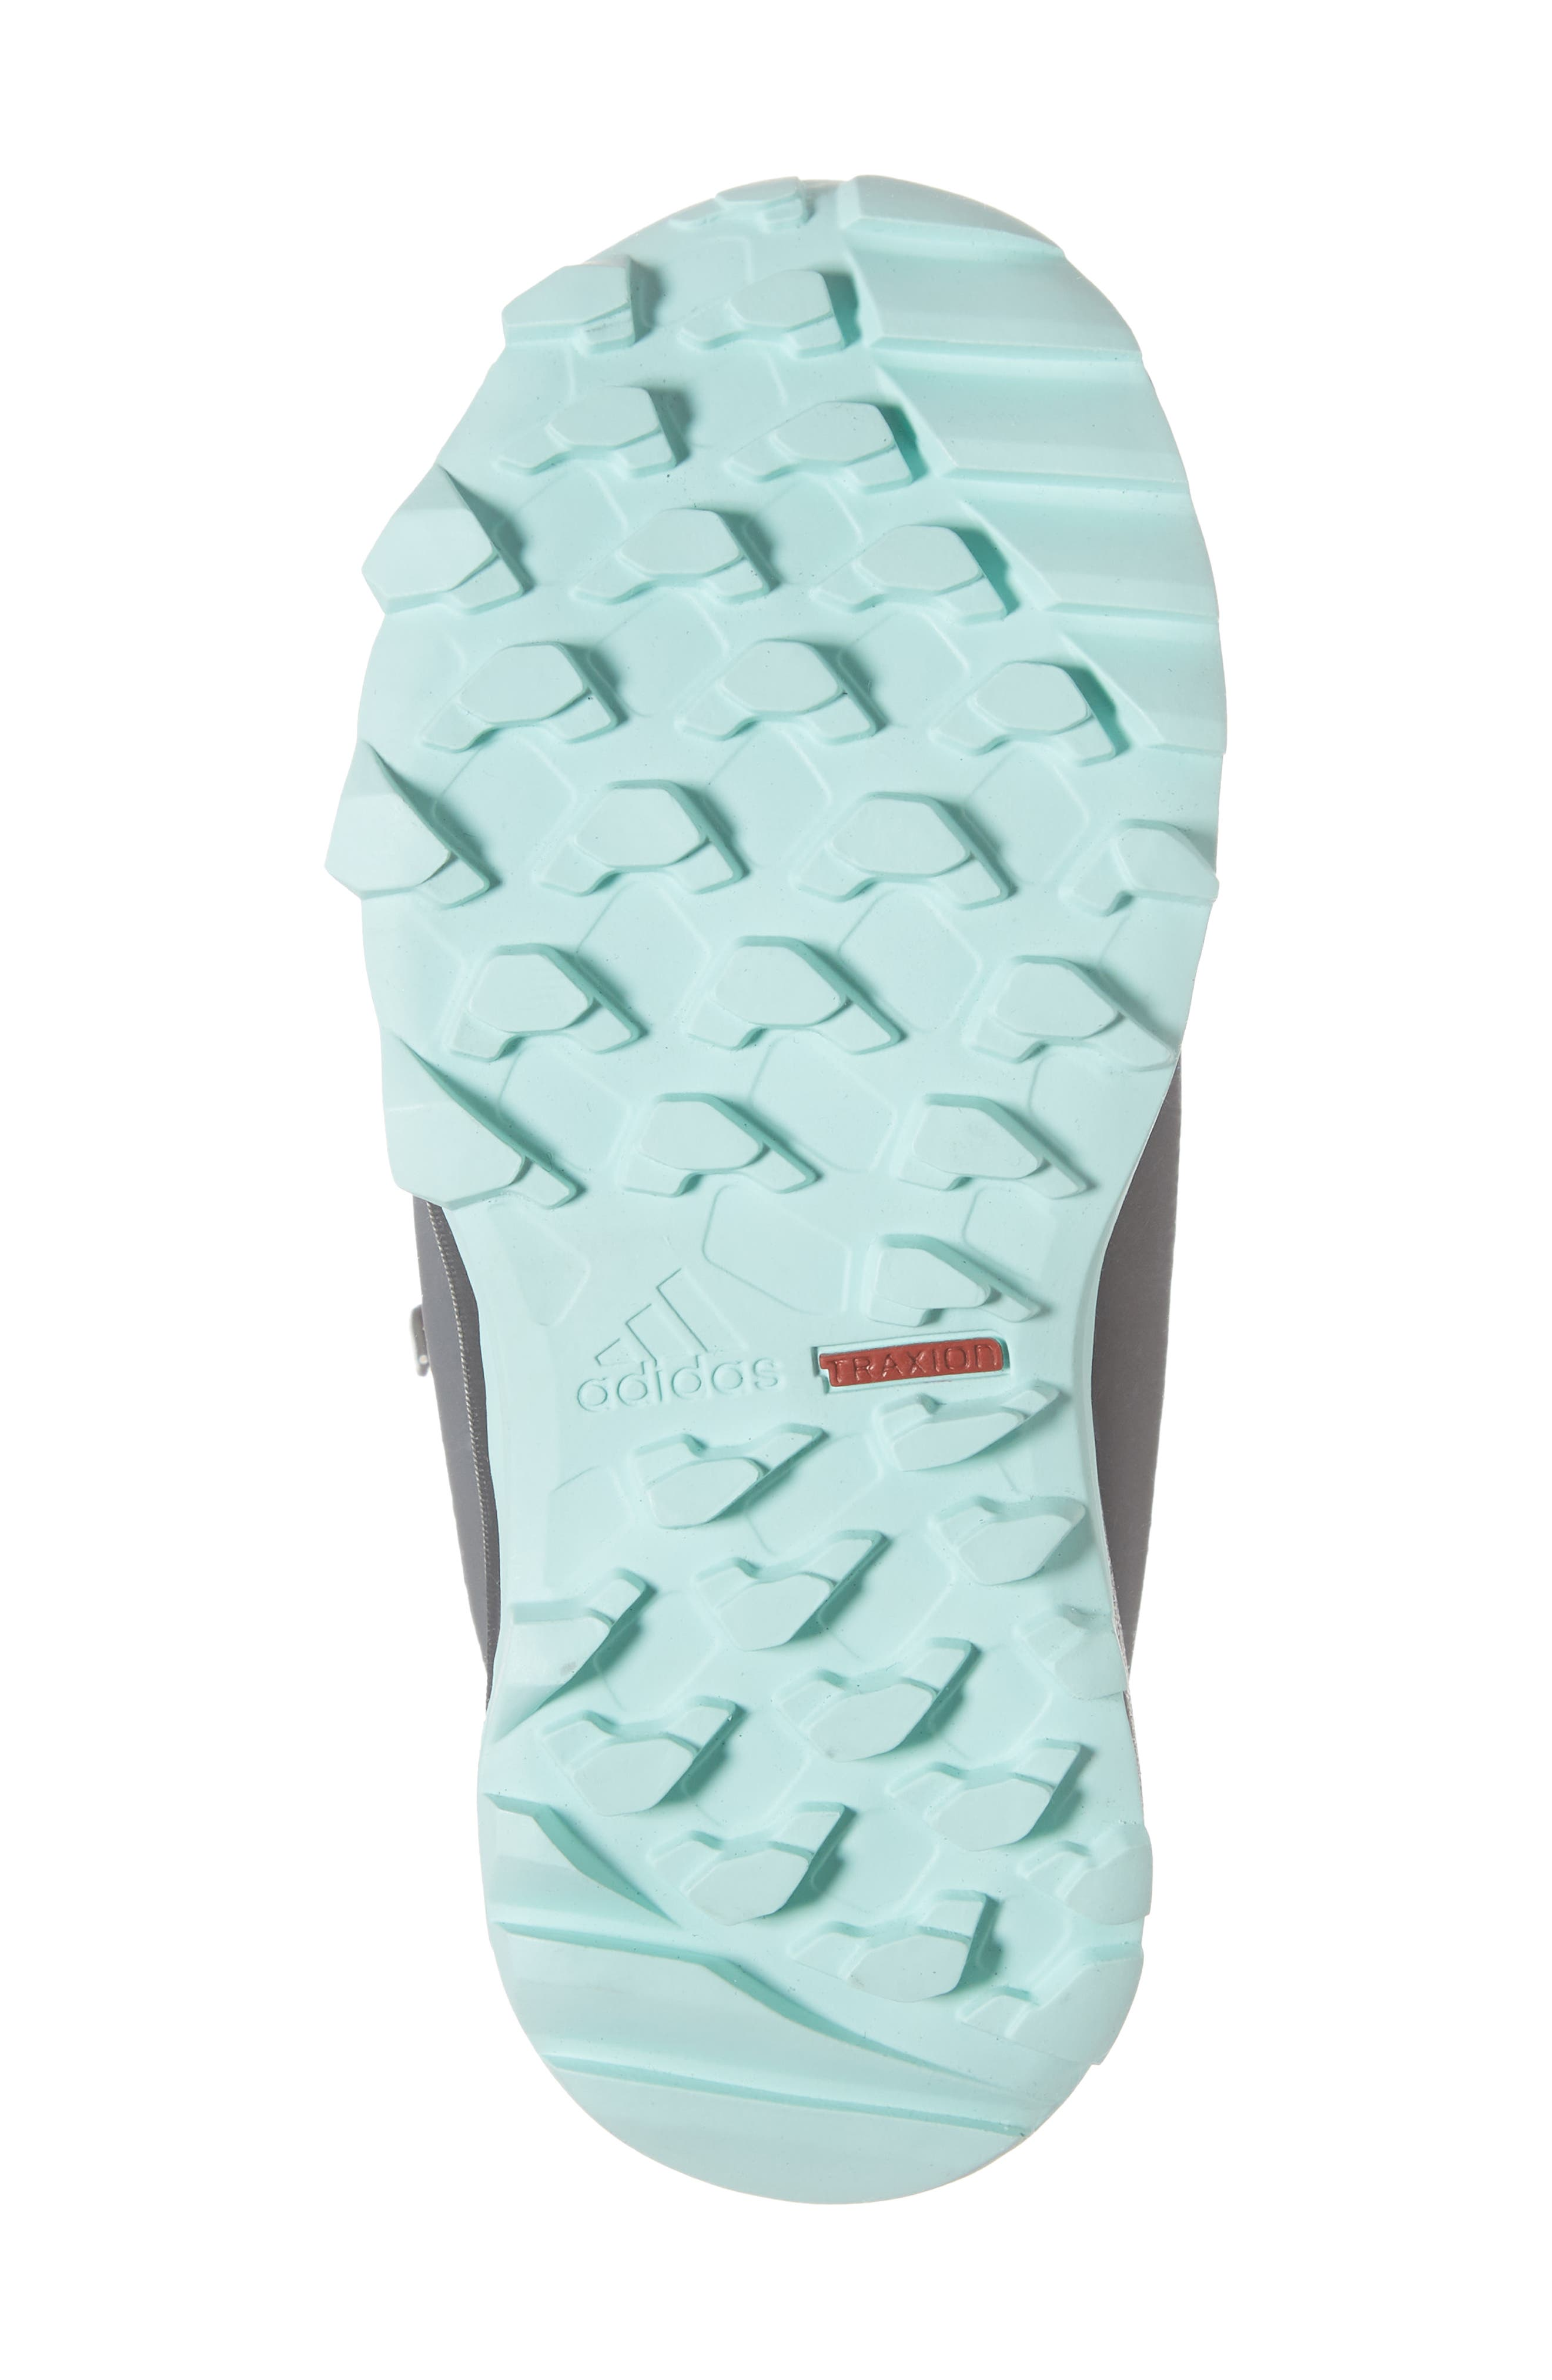 Terrex Snow CP CW Insulated Waterproof Sneaker Boot,                             Alternate thumbnail 6, color,                             CLEAR MINT/ CARBON/ AQUA